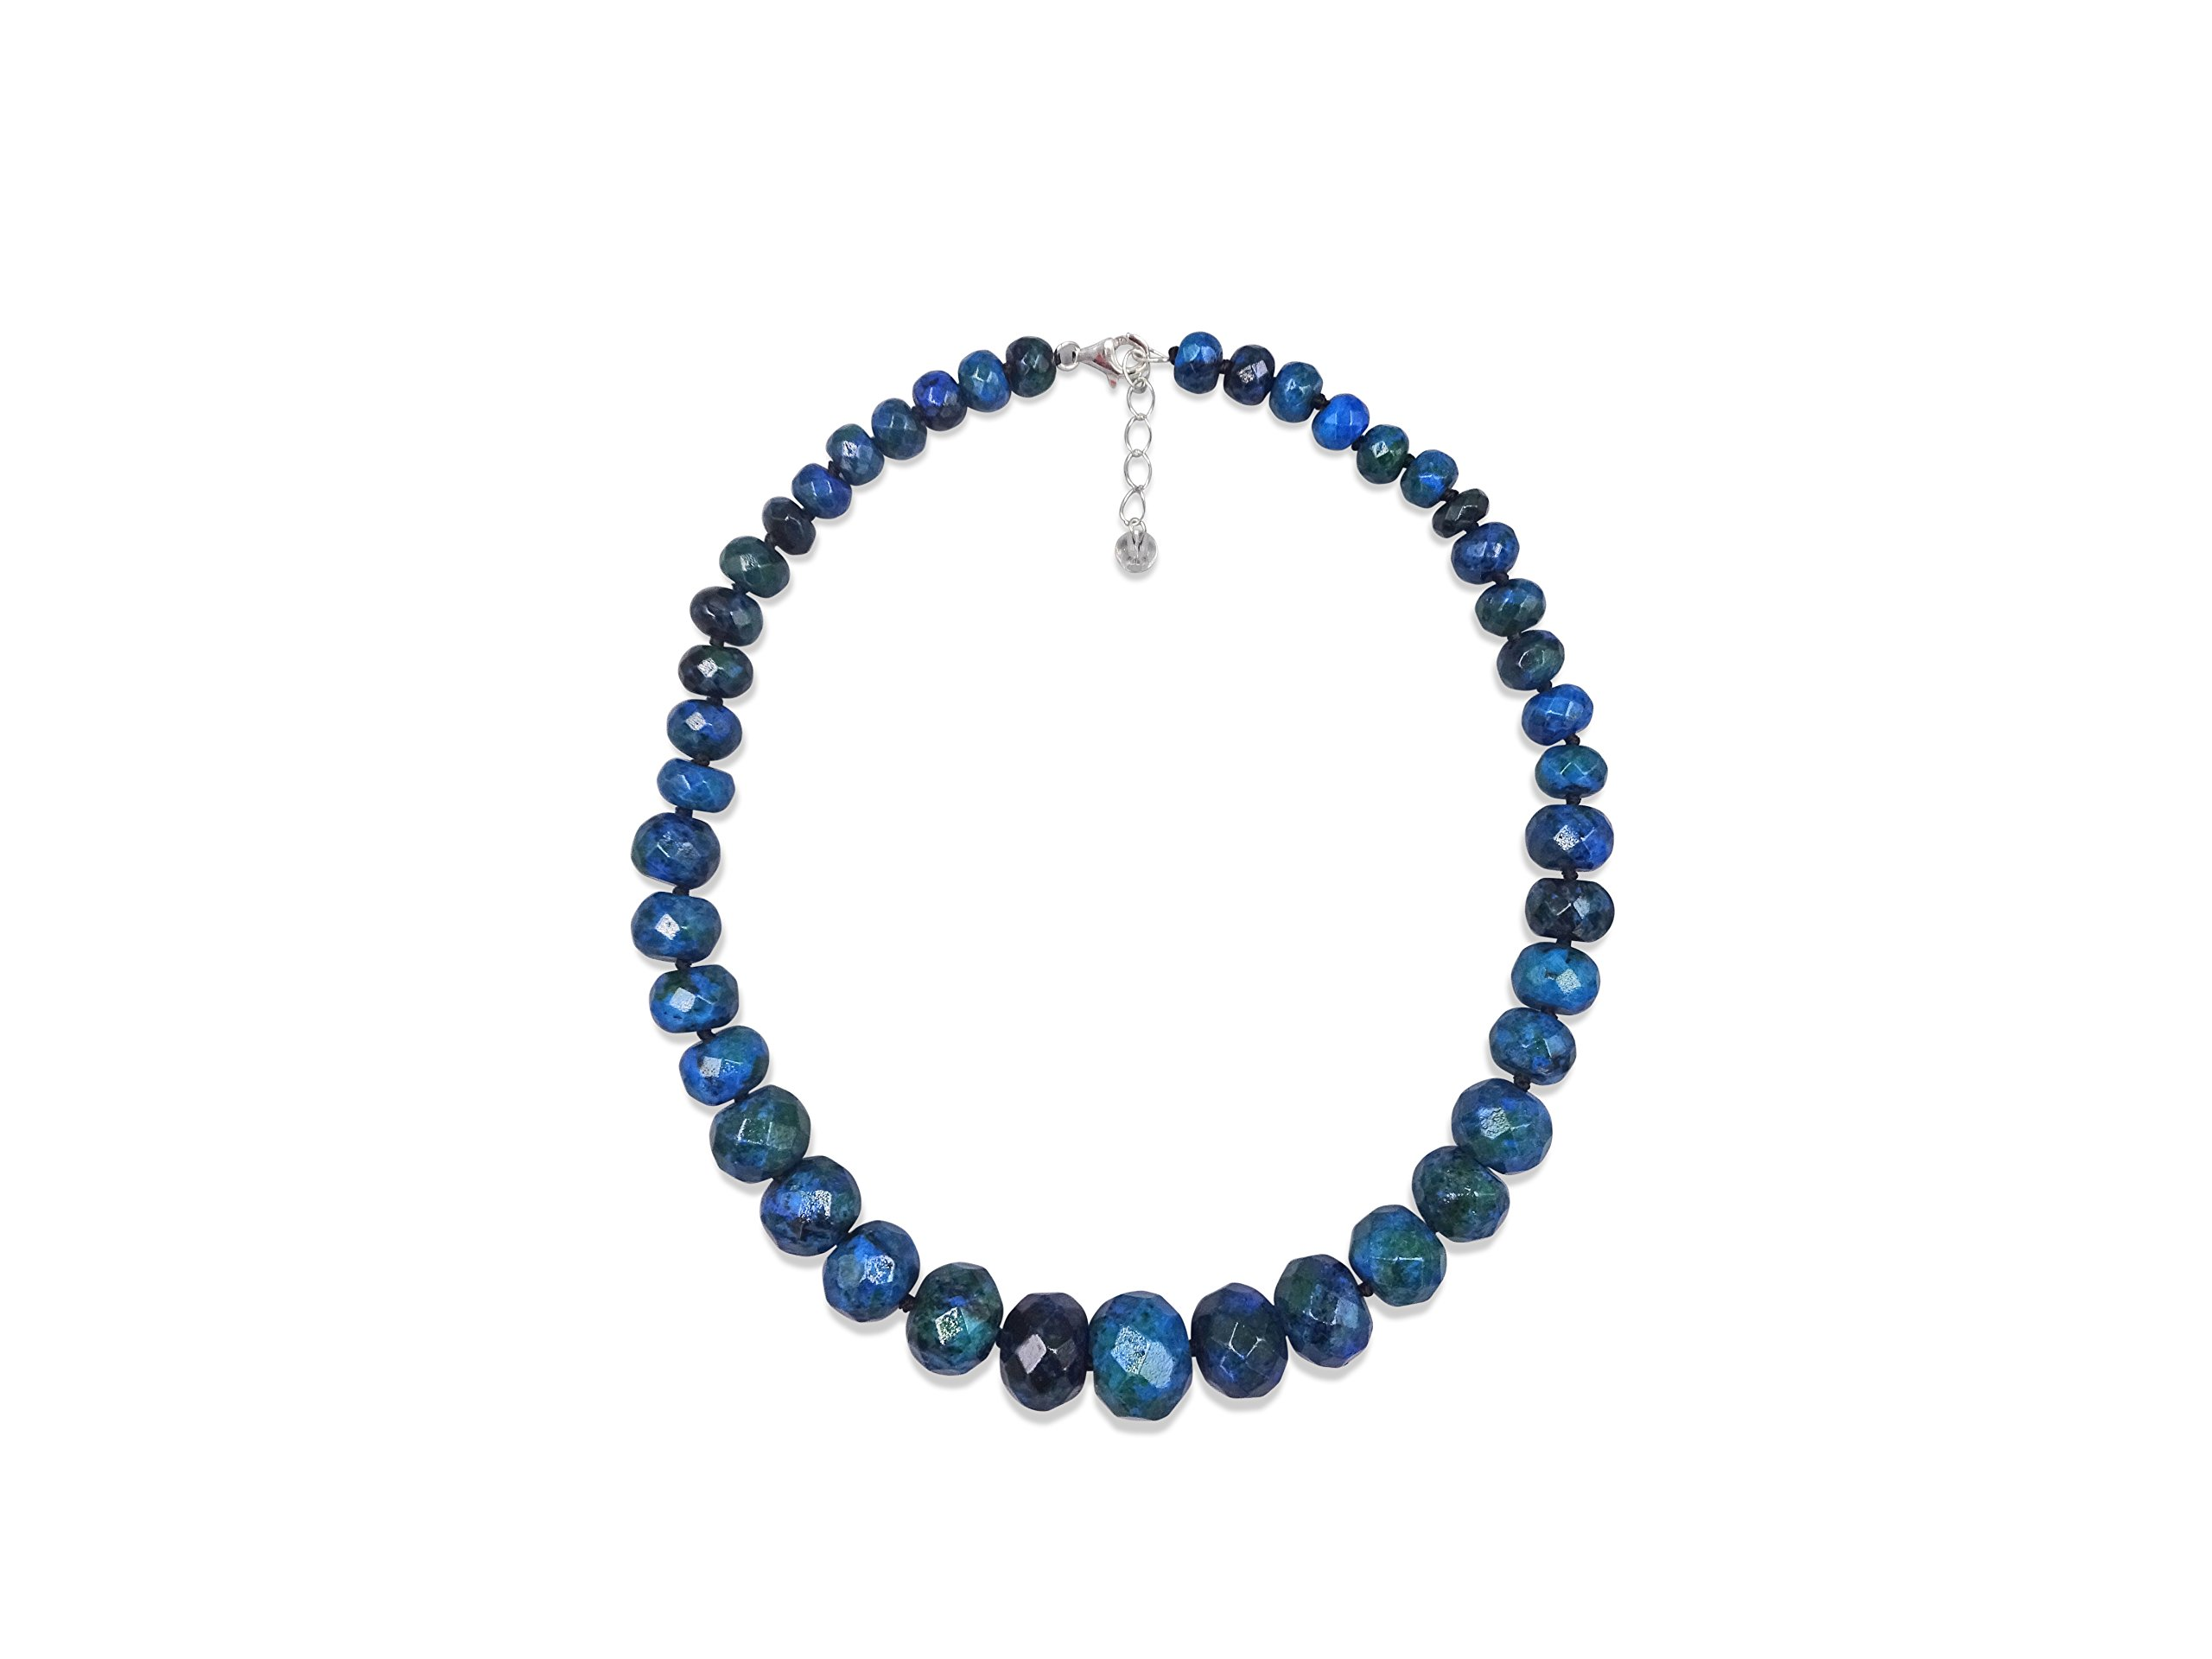 MGR Graduated Azurite Hand Beaded Rondelle Stone Statement Necklace.